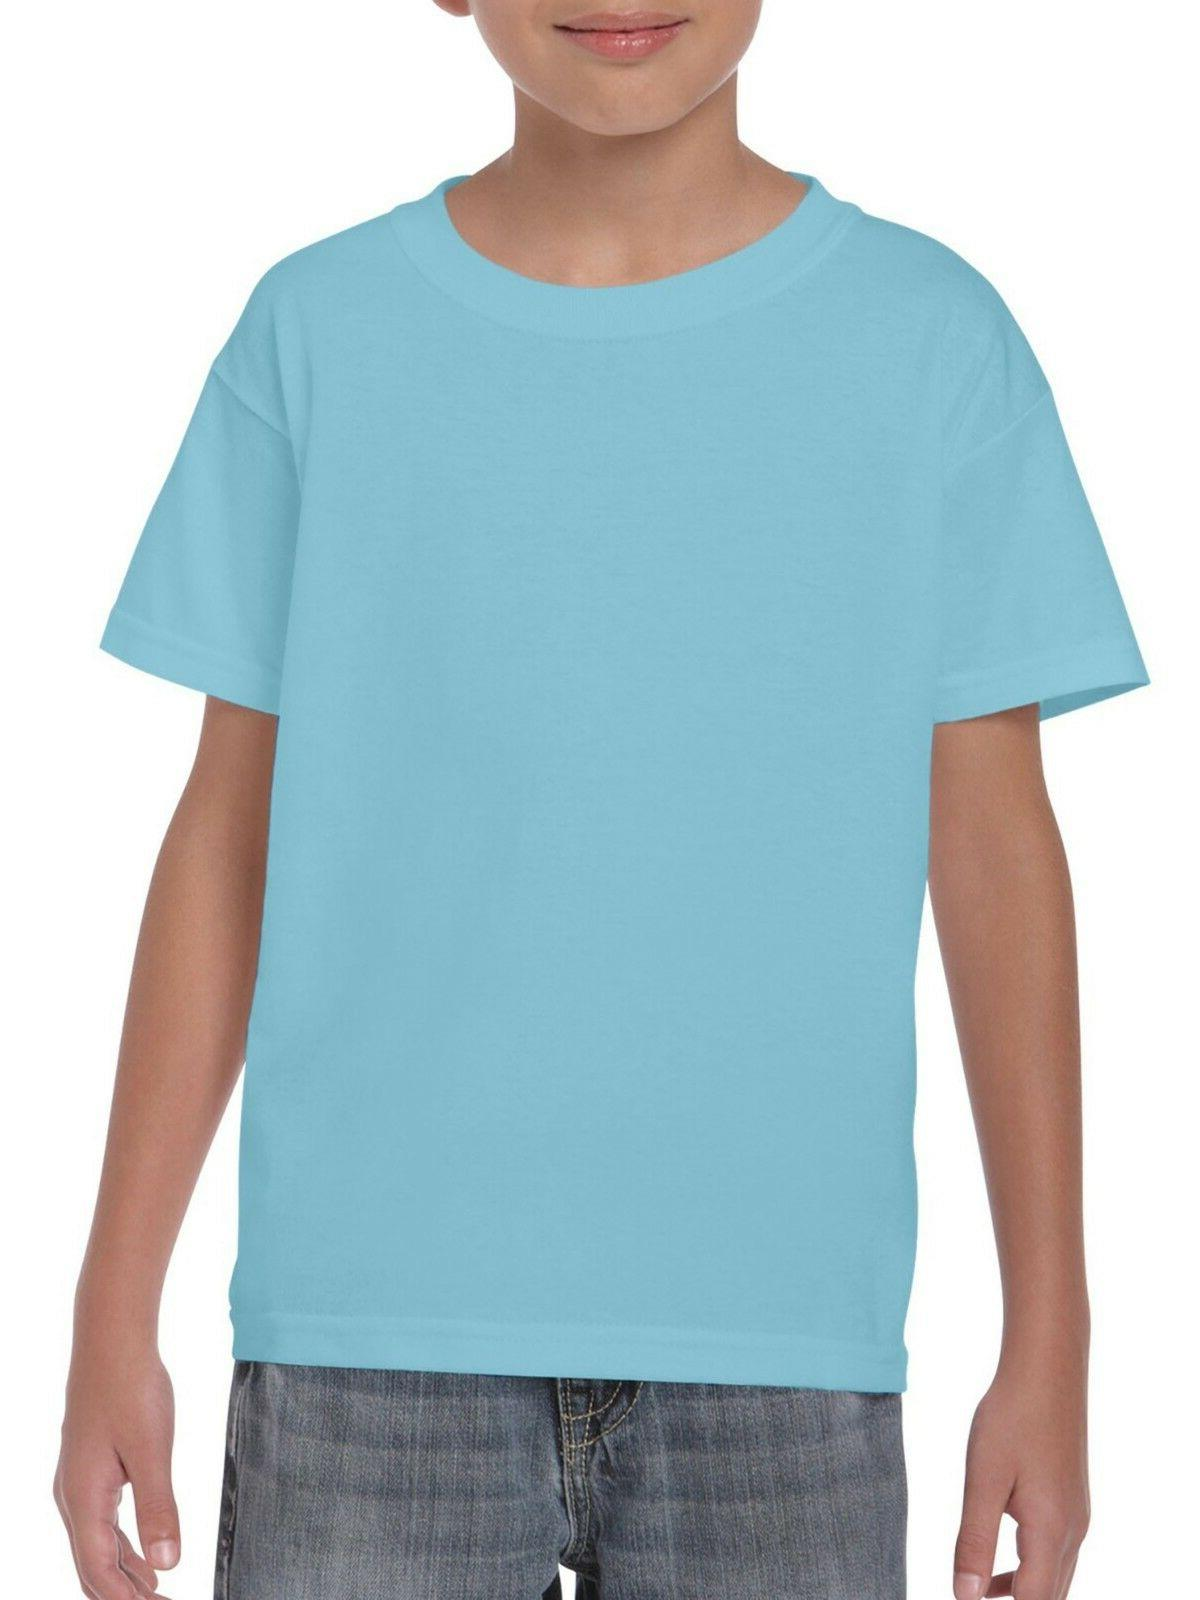 Gildan Kids Short Sleeve T-Shirt Blue Size Small